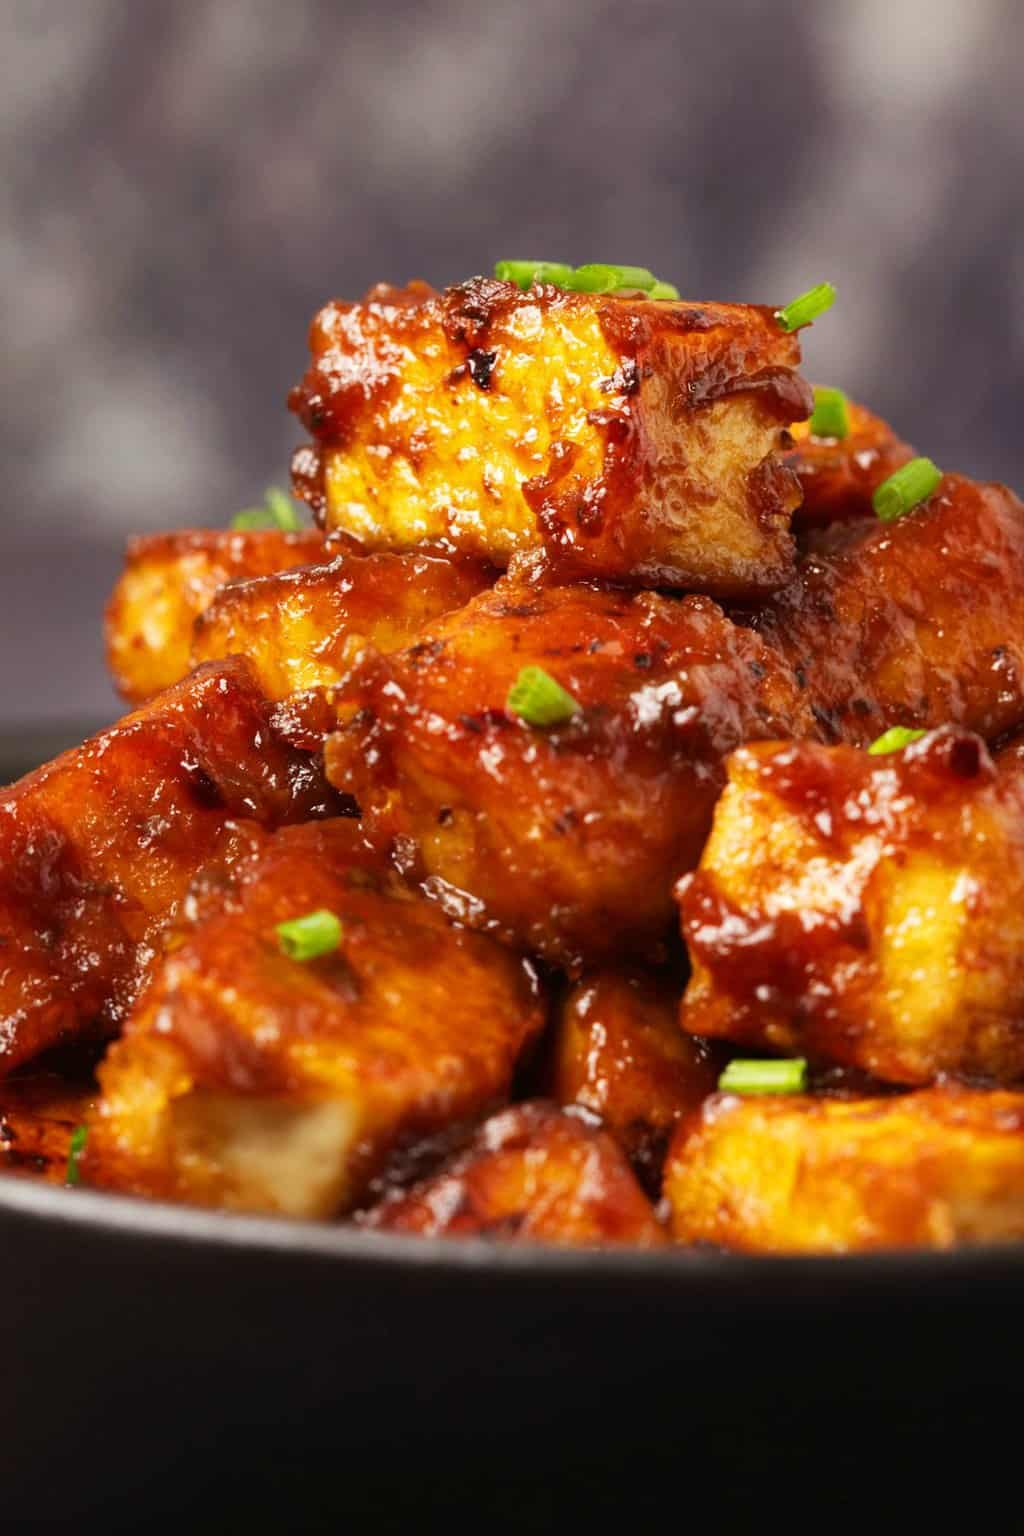 General Tso's tofu topped with chopped chives in a black bowl.